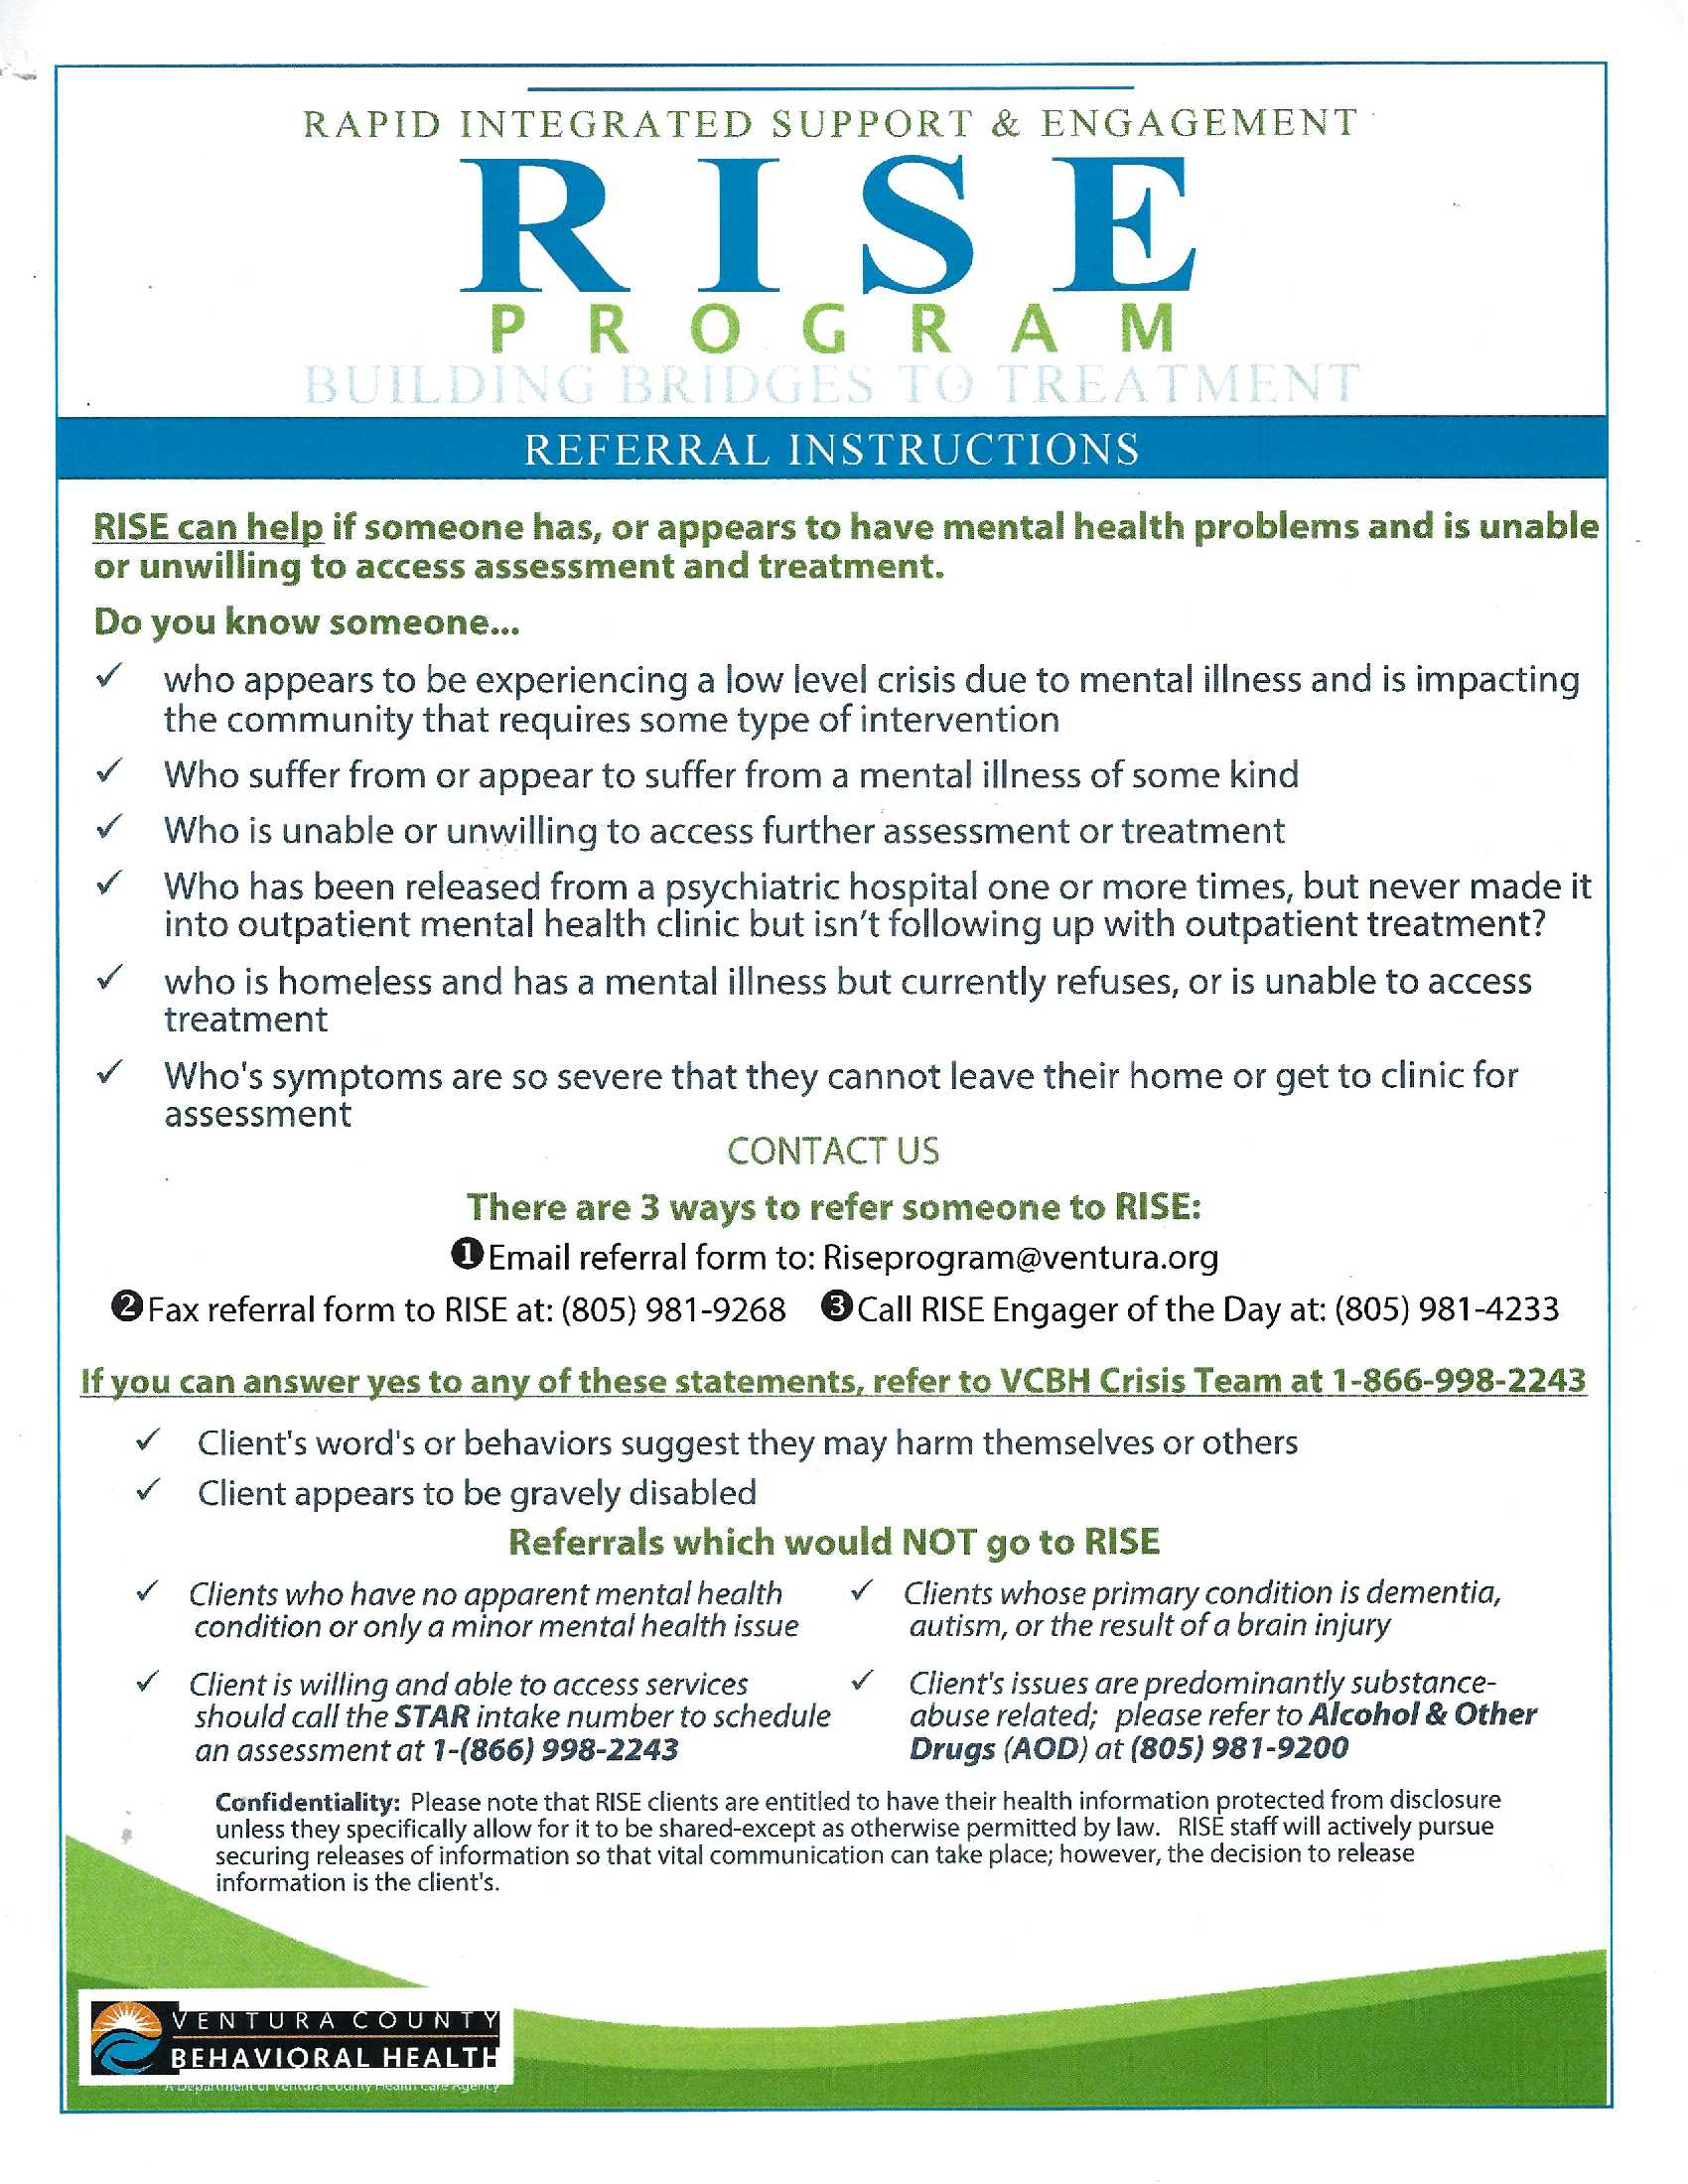 Rapid Integrated Support and Engagement Program